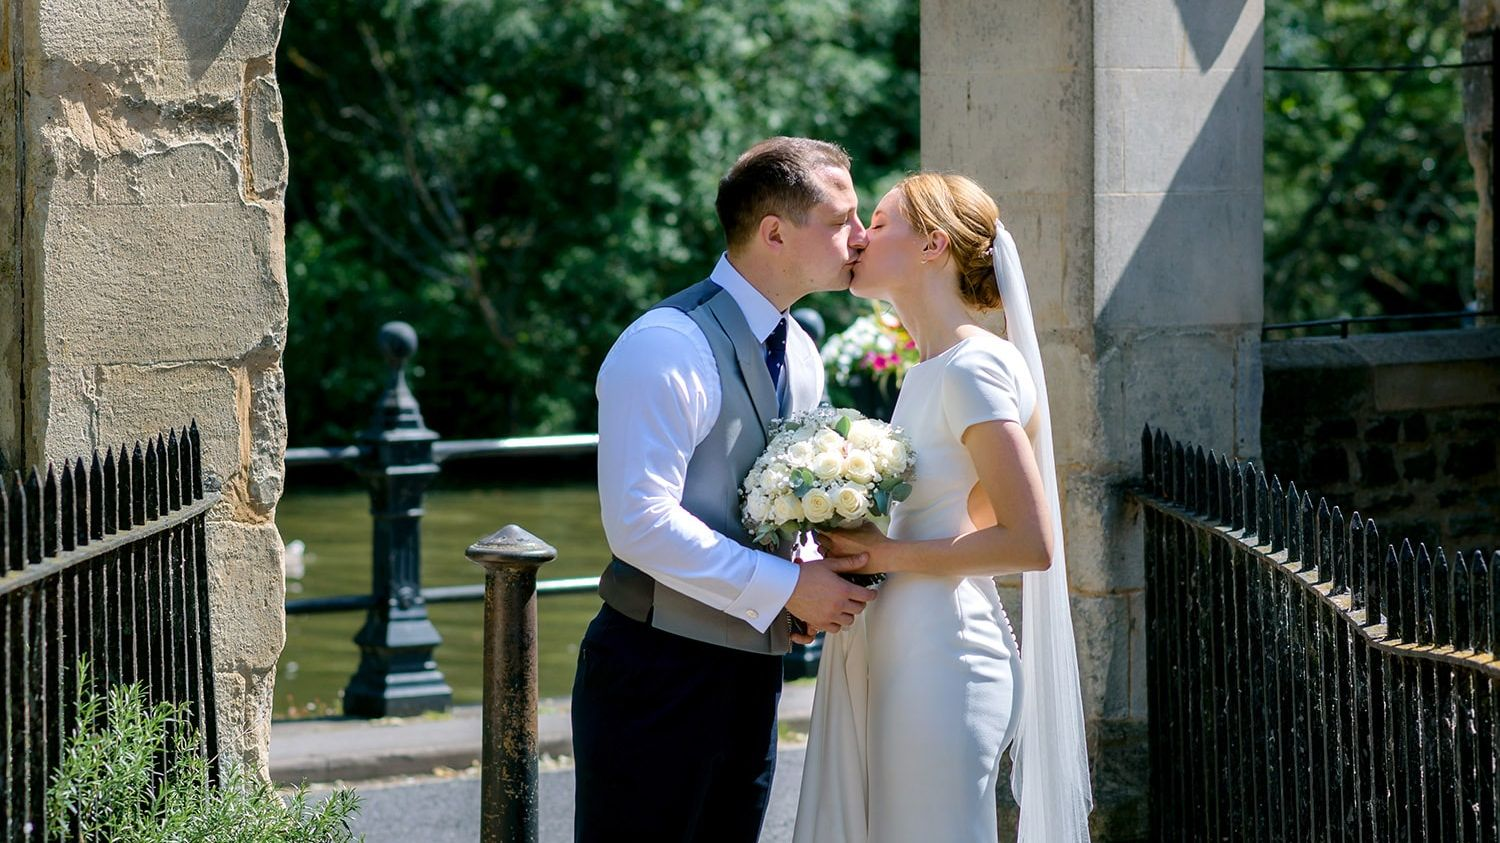 Professional wedding photographer in Abingdon and Oxfordshire